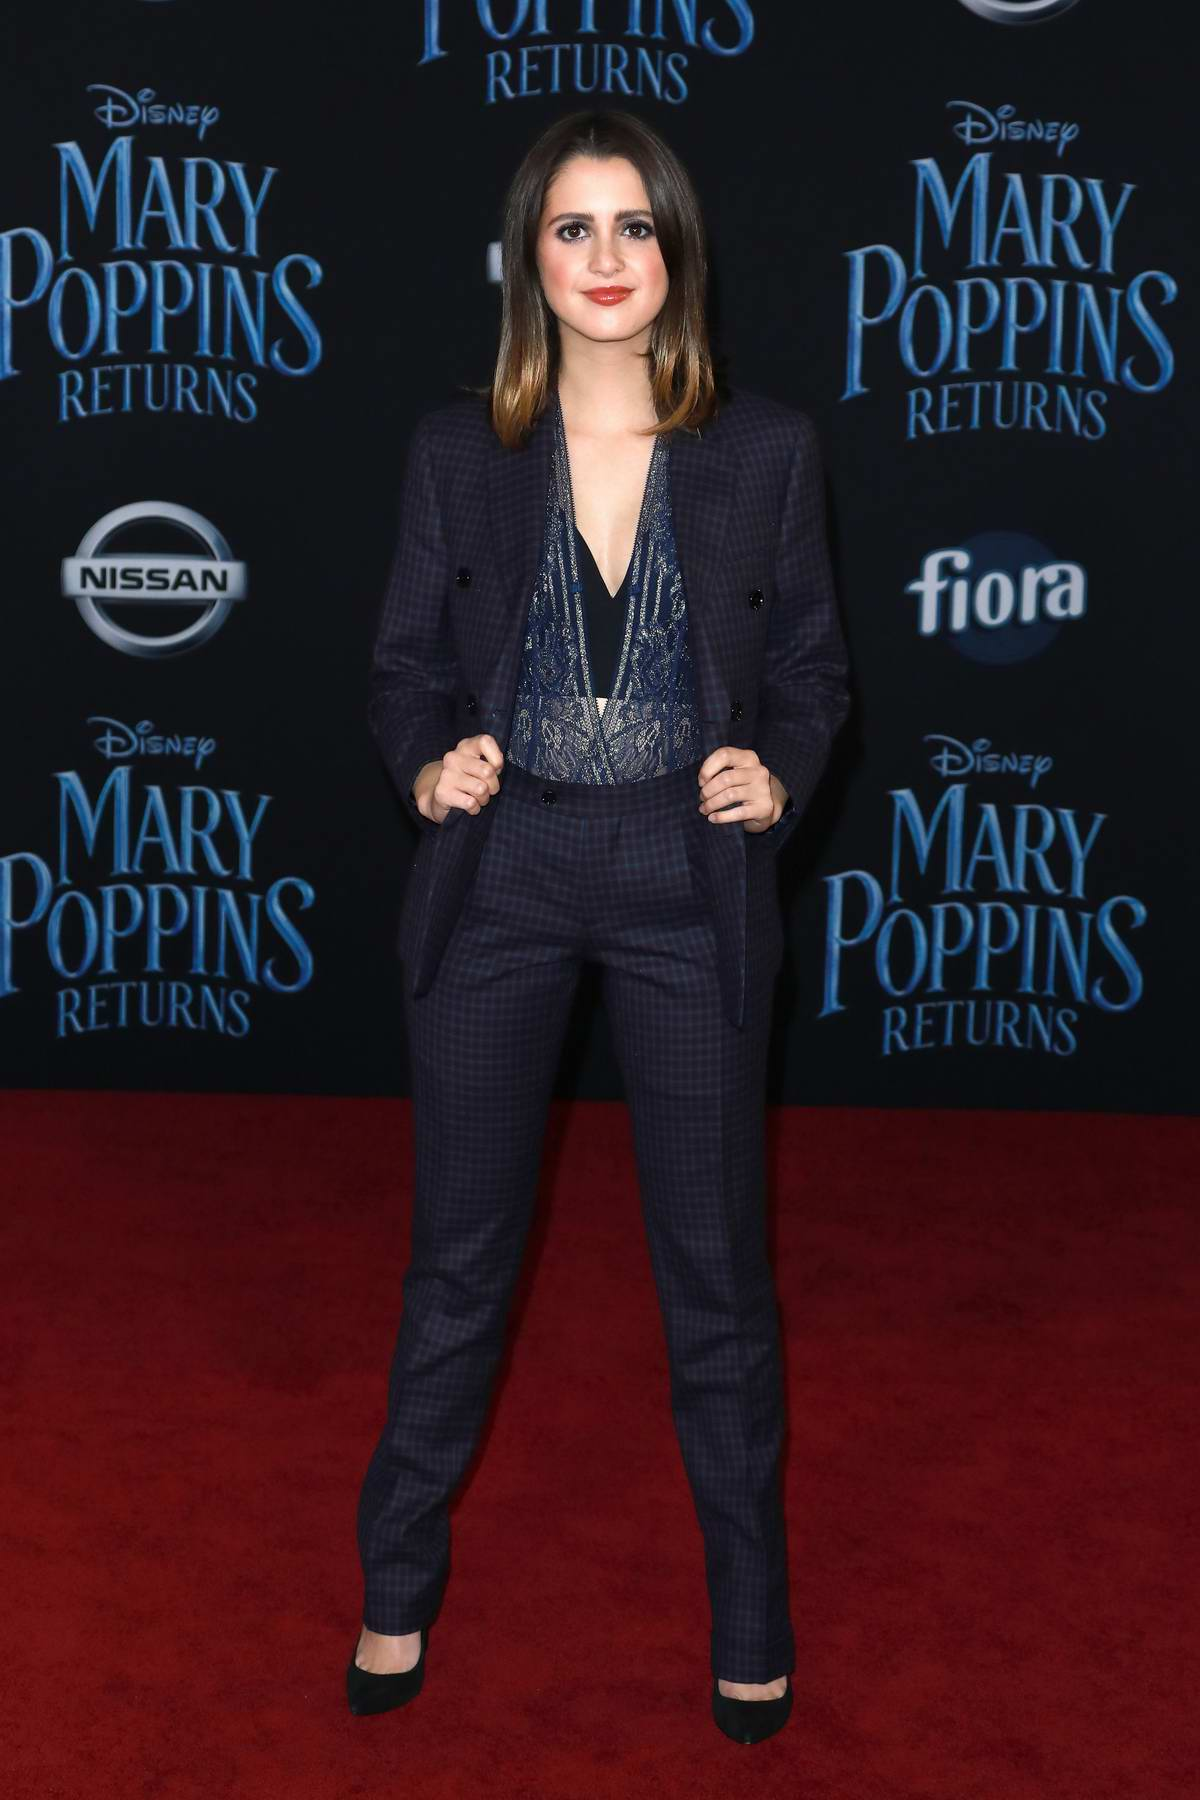 Laura Marano attends the World Premiere of Disney's 'Mary Poppins Returns' at Dolby Theatre in Hollywood, California